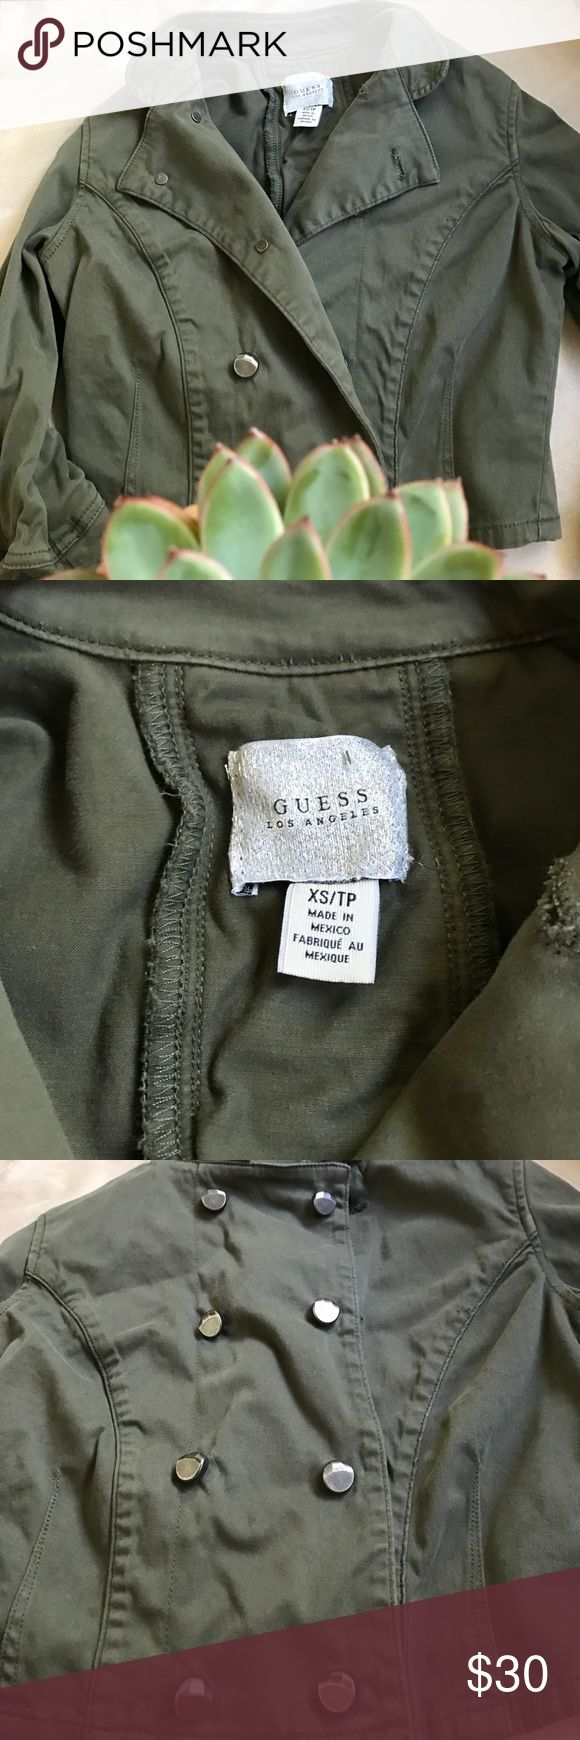 Guess olive green jacket Worn once! In perfect like new condition Guess Jackets & Coats Blazers